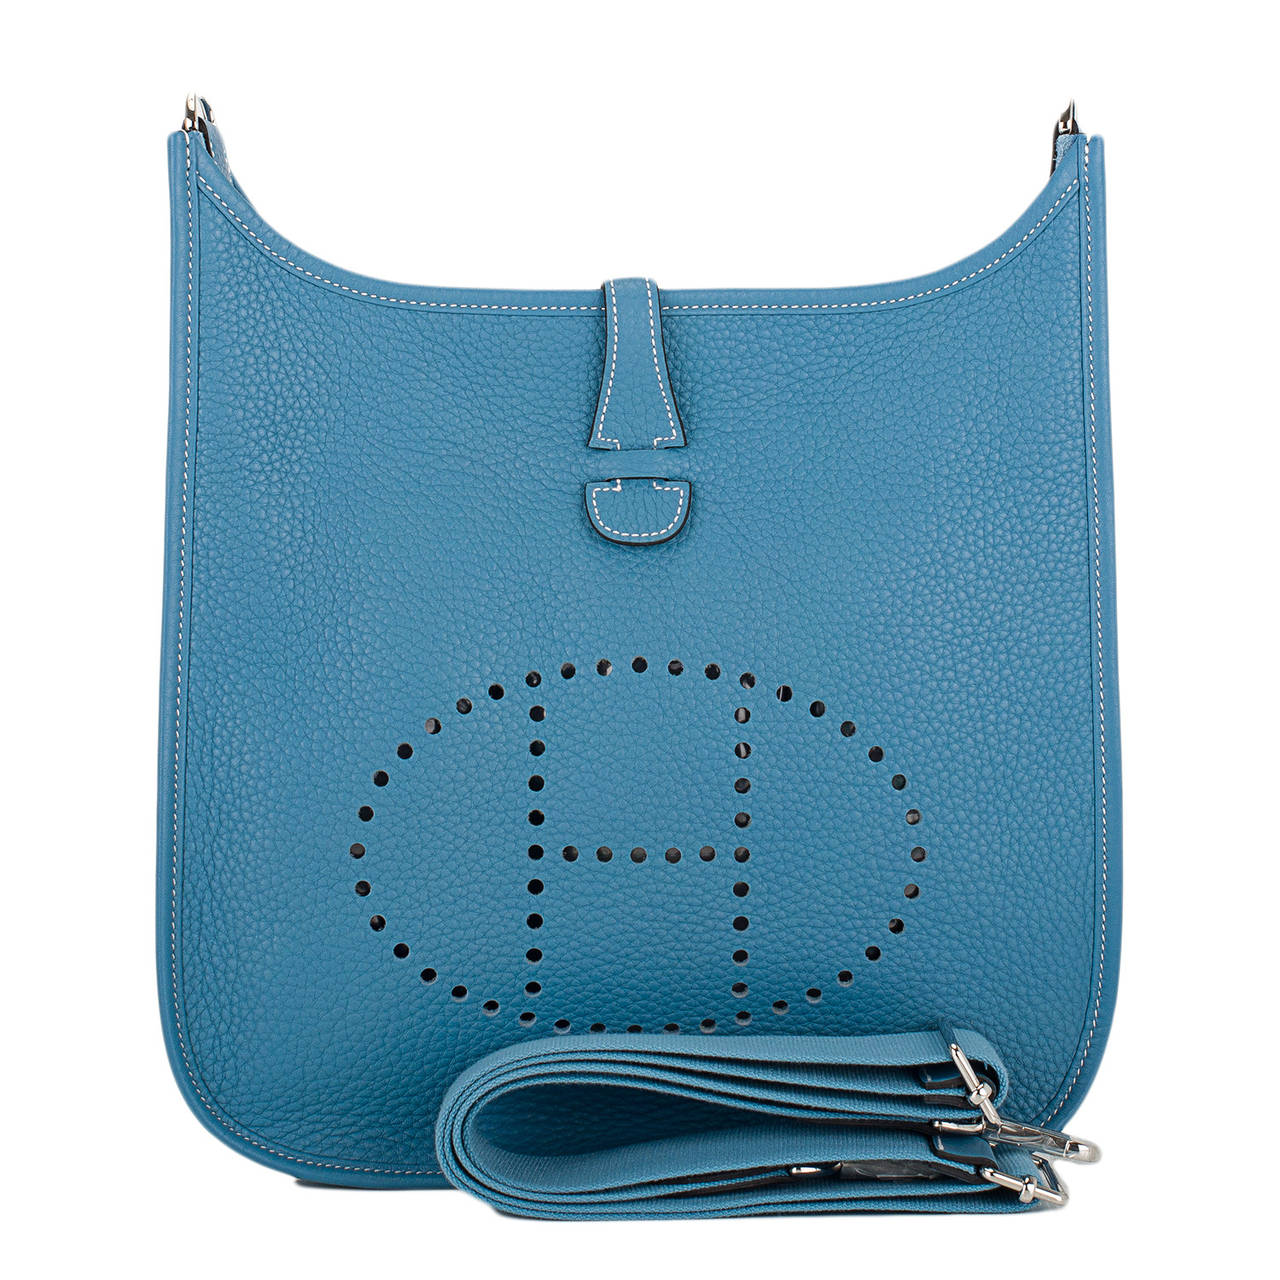 Hermes Blue Jean Clemence Evelyne III PM at 1stdibs